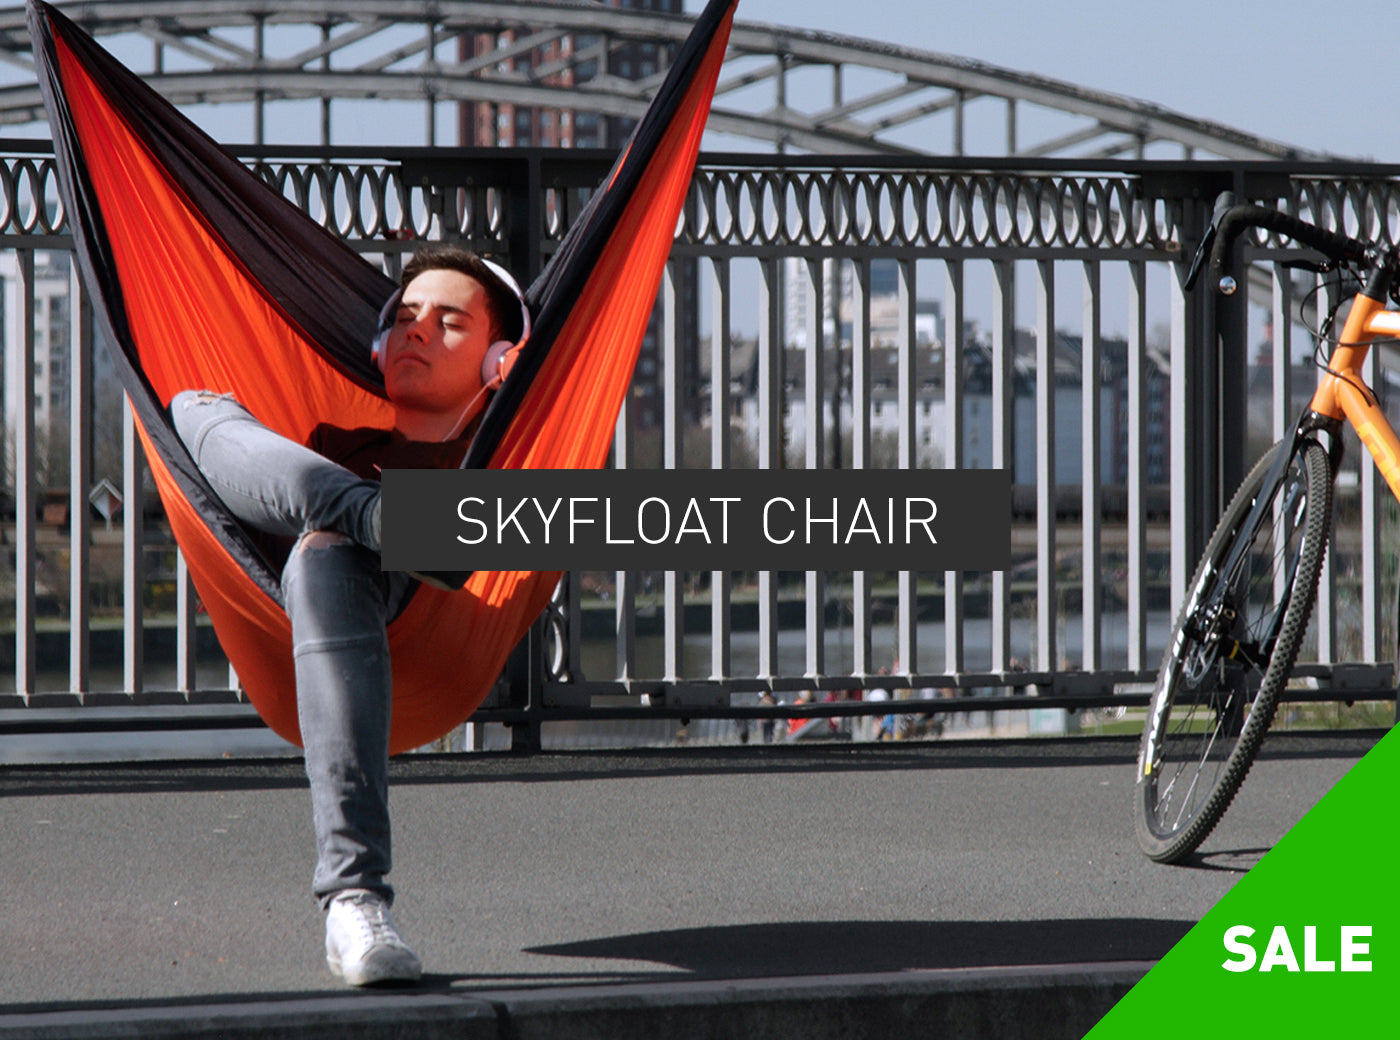 THE SKYFLOAT CHAIR – RIDE & RELAX